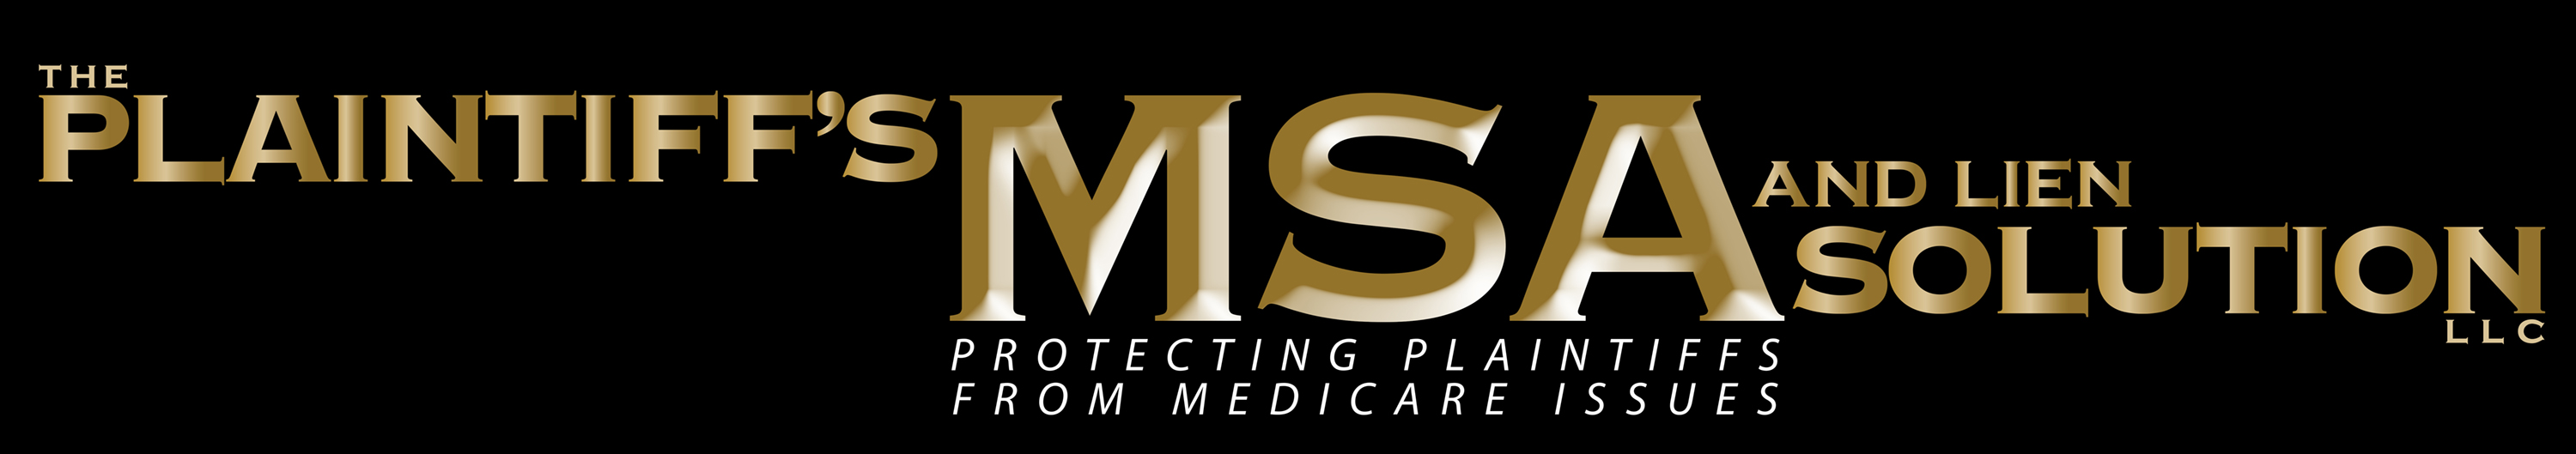 Plaintiffs MSA and Lien Solution - Protecting Plaintiffs from Medicare Issues